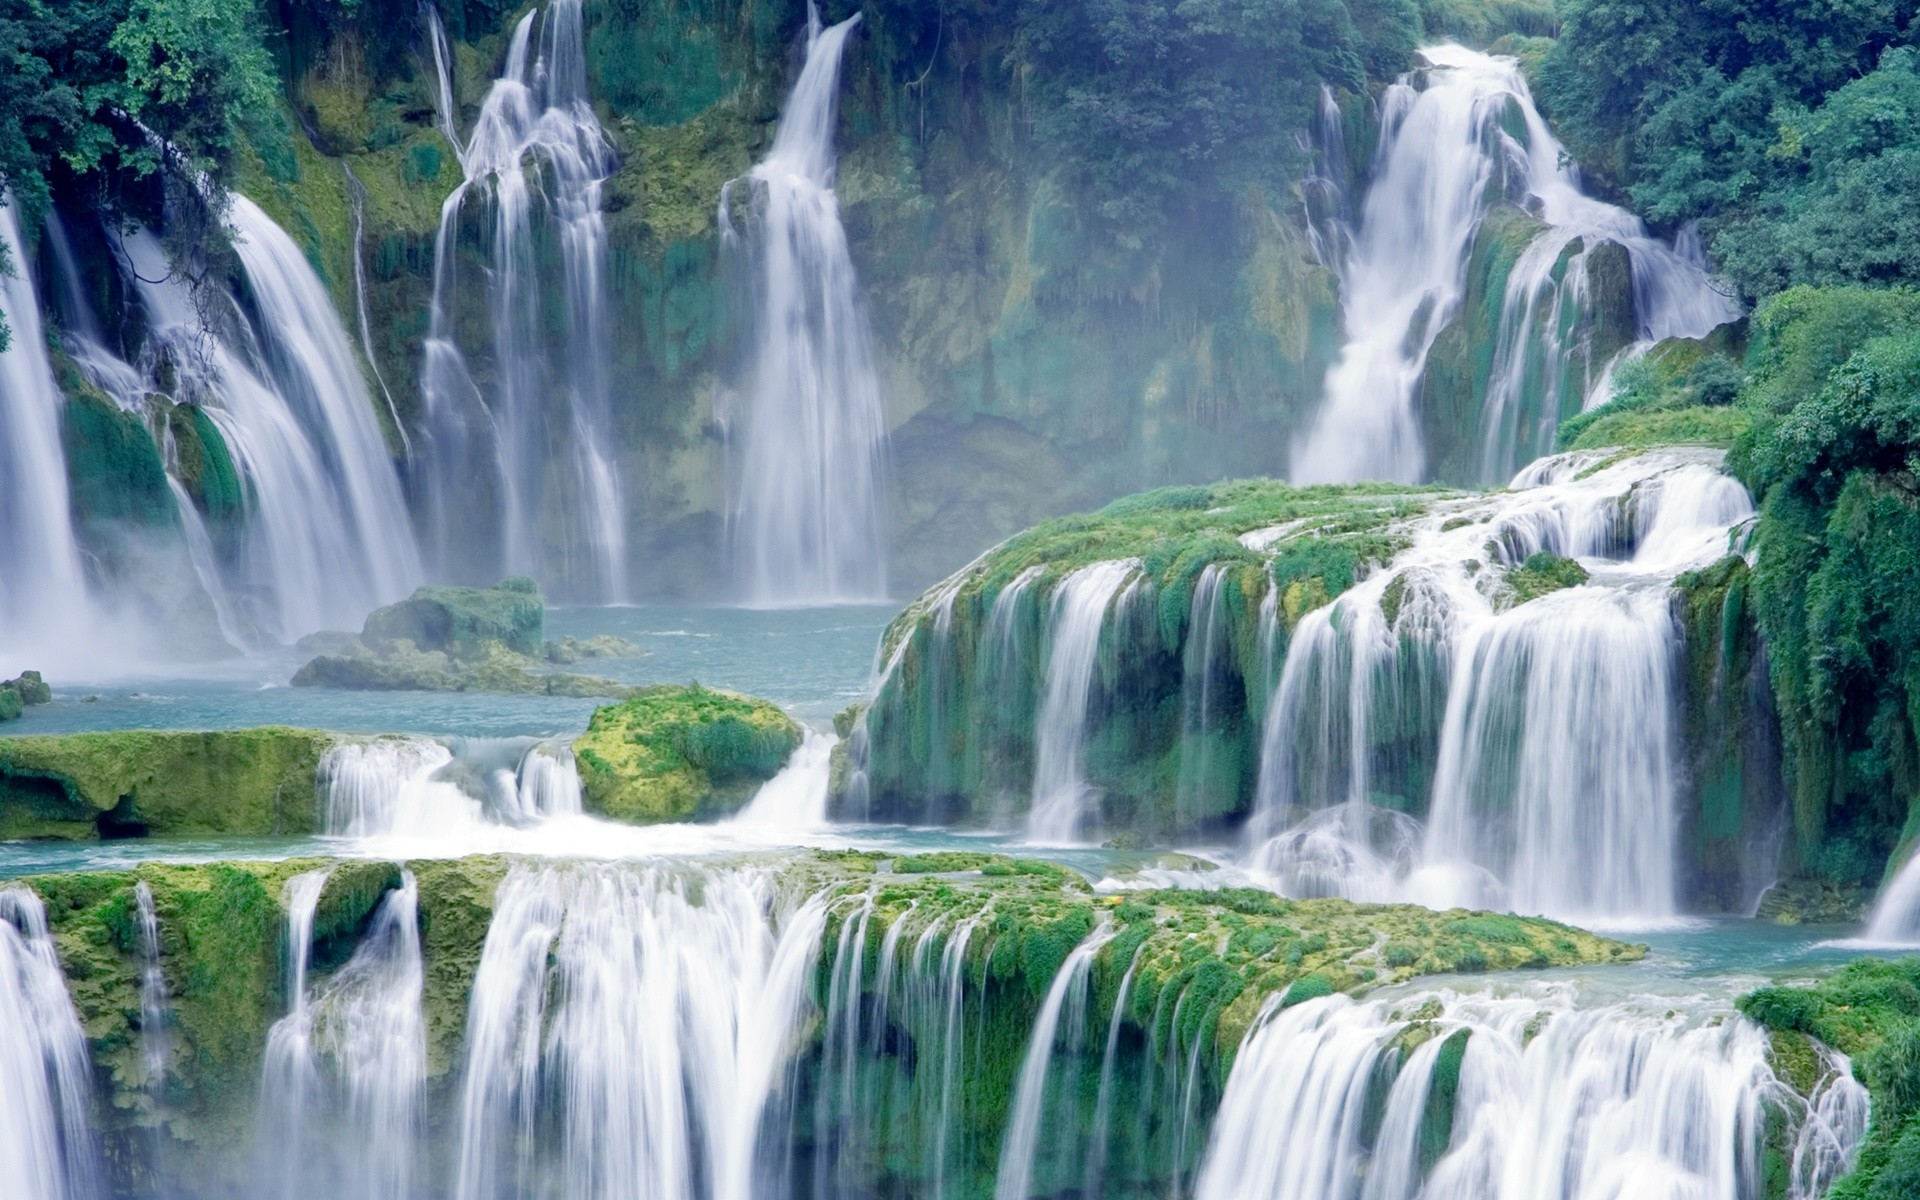 Waterfall Images wallpapers (63 Wallpapers)